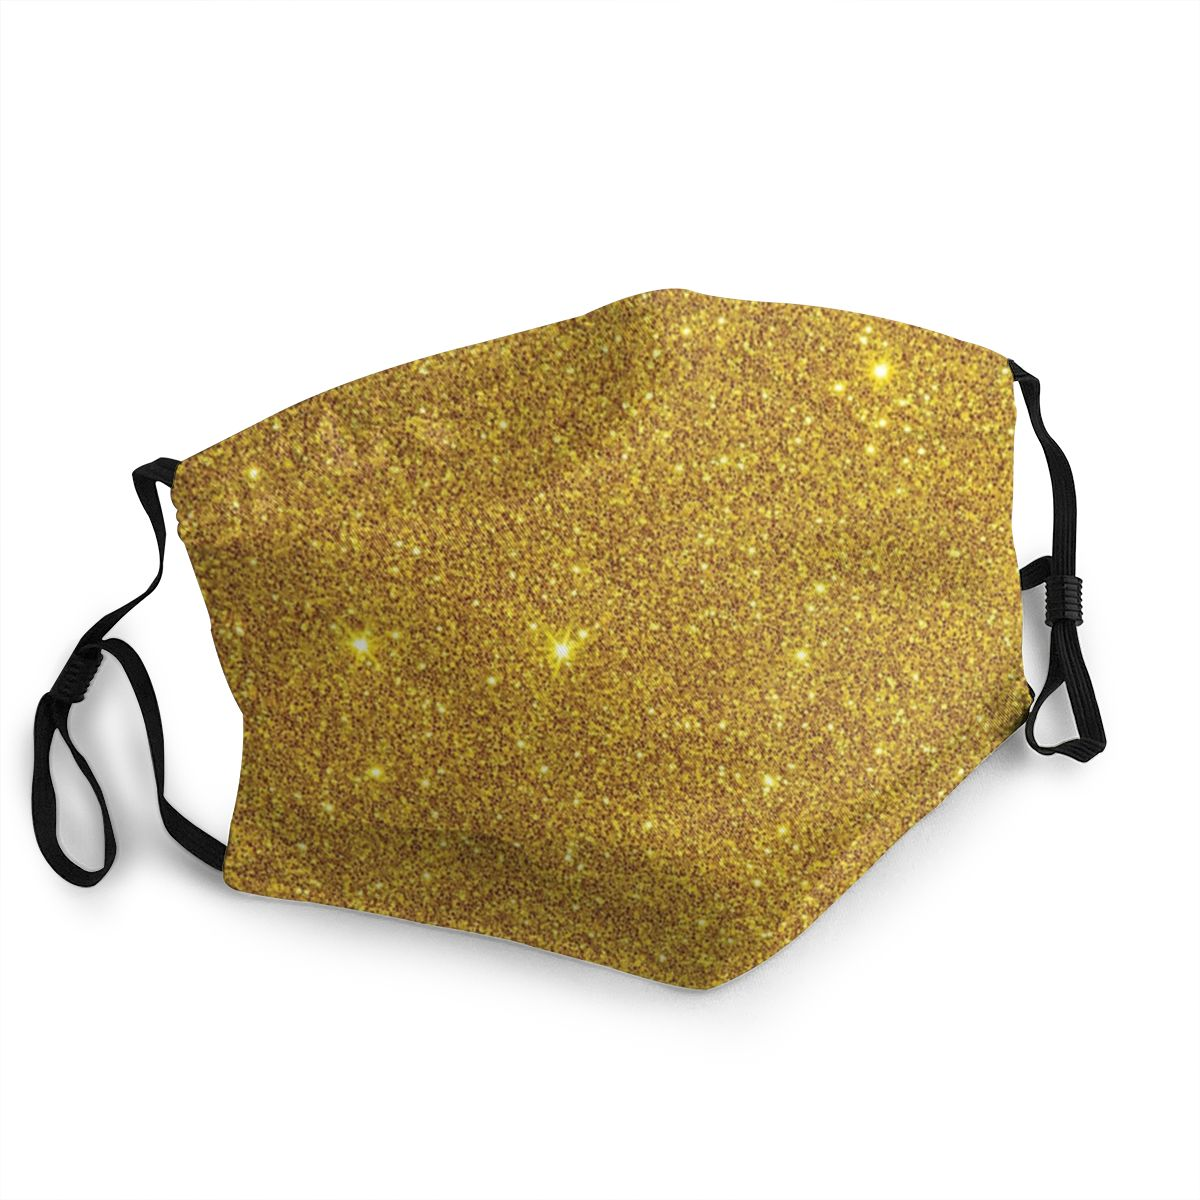 Sparkling Gold Non-Disposable Mouth Face Mask Printed Anti Haze Dust Mask Protection Cover Respirator Mouth Muffle